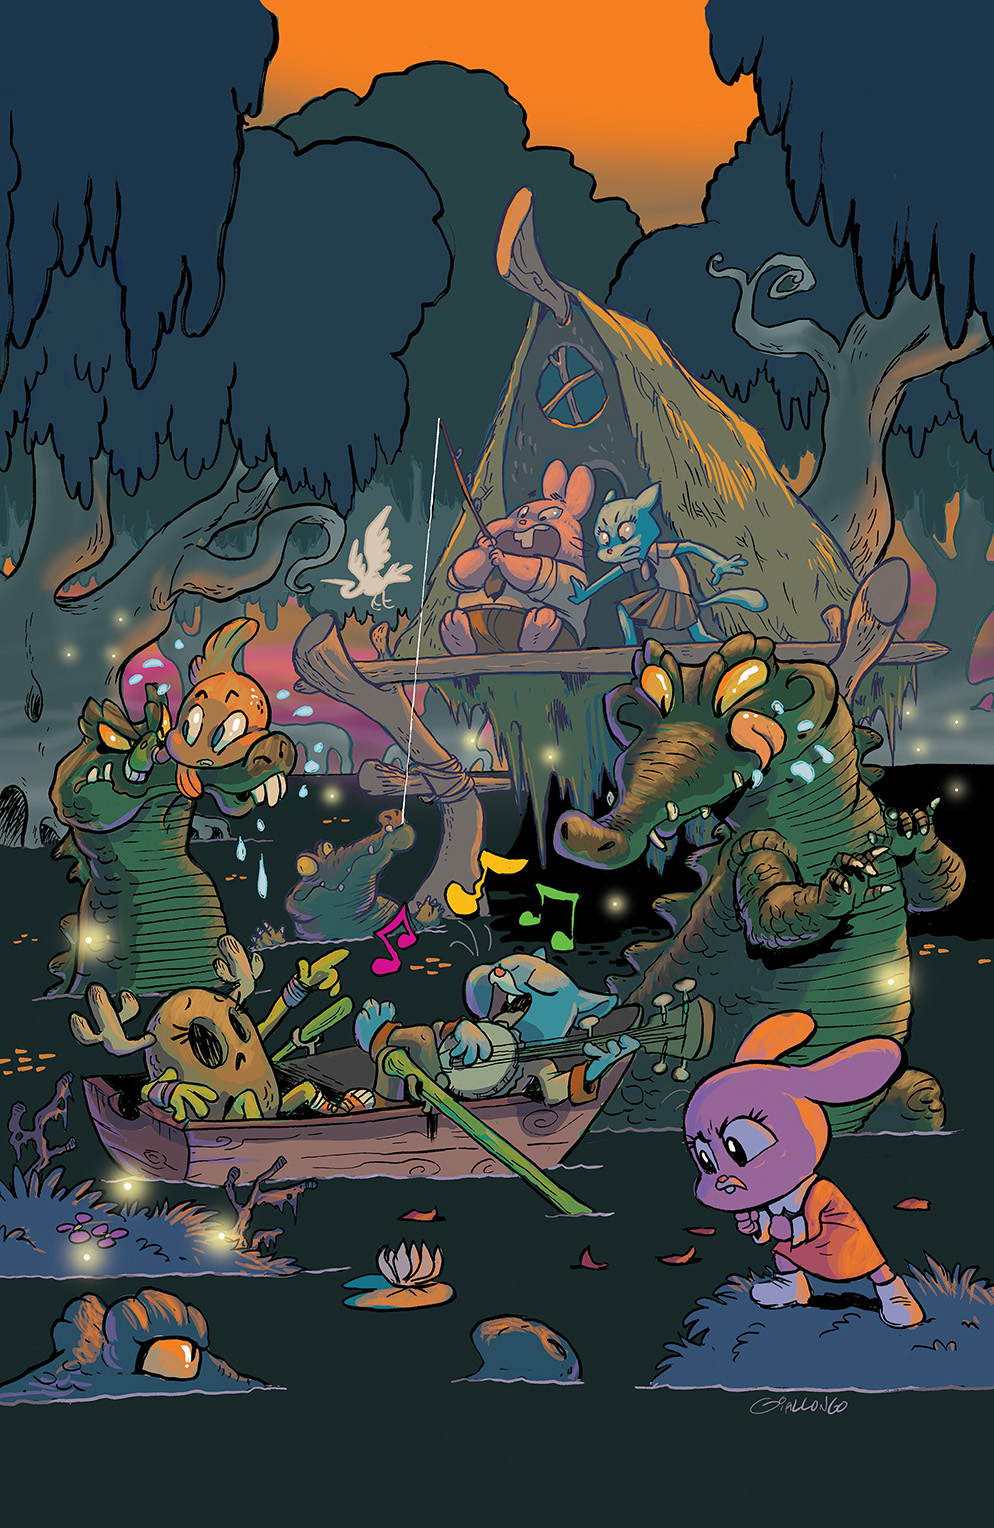 The Amazing World of Gumball #8 Cover B by Zachary Giallongo